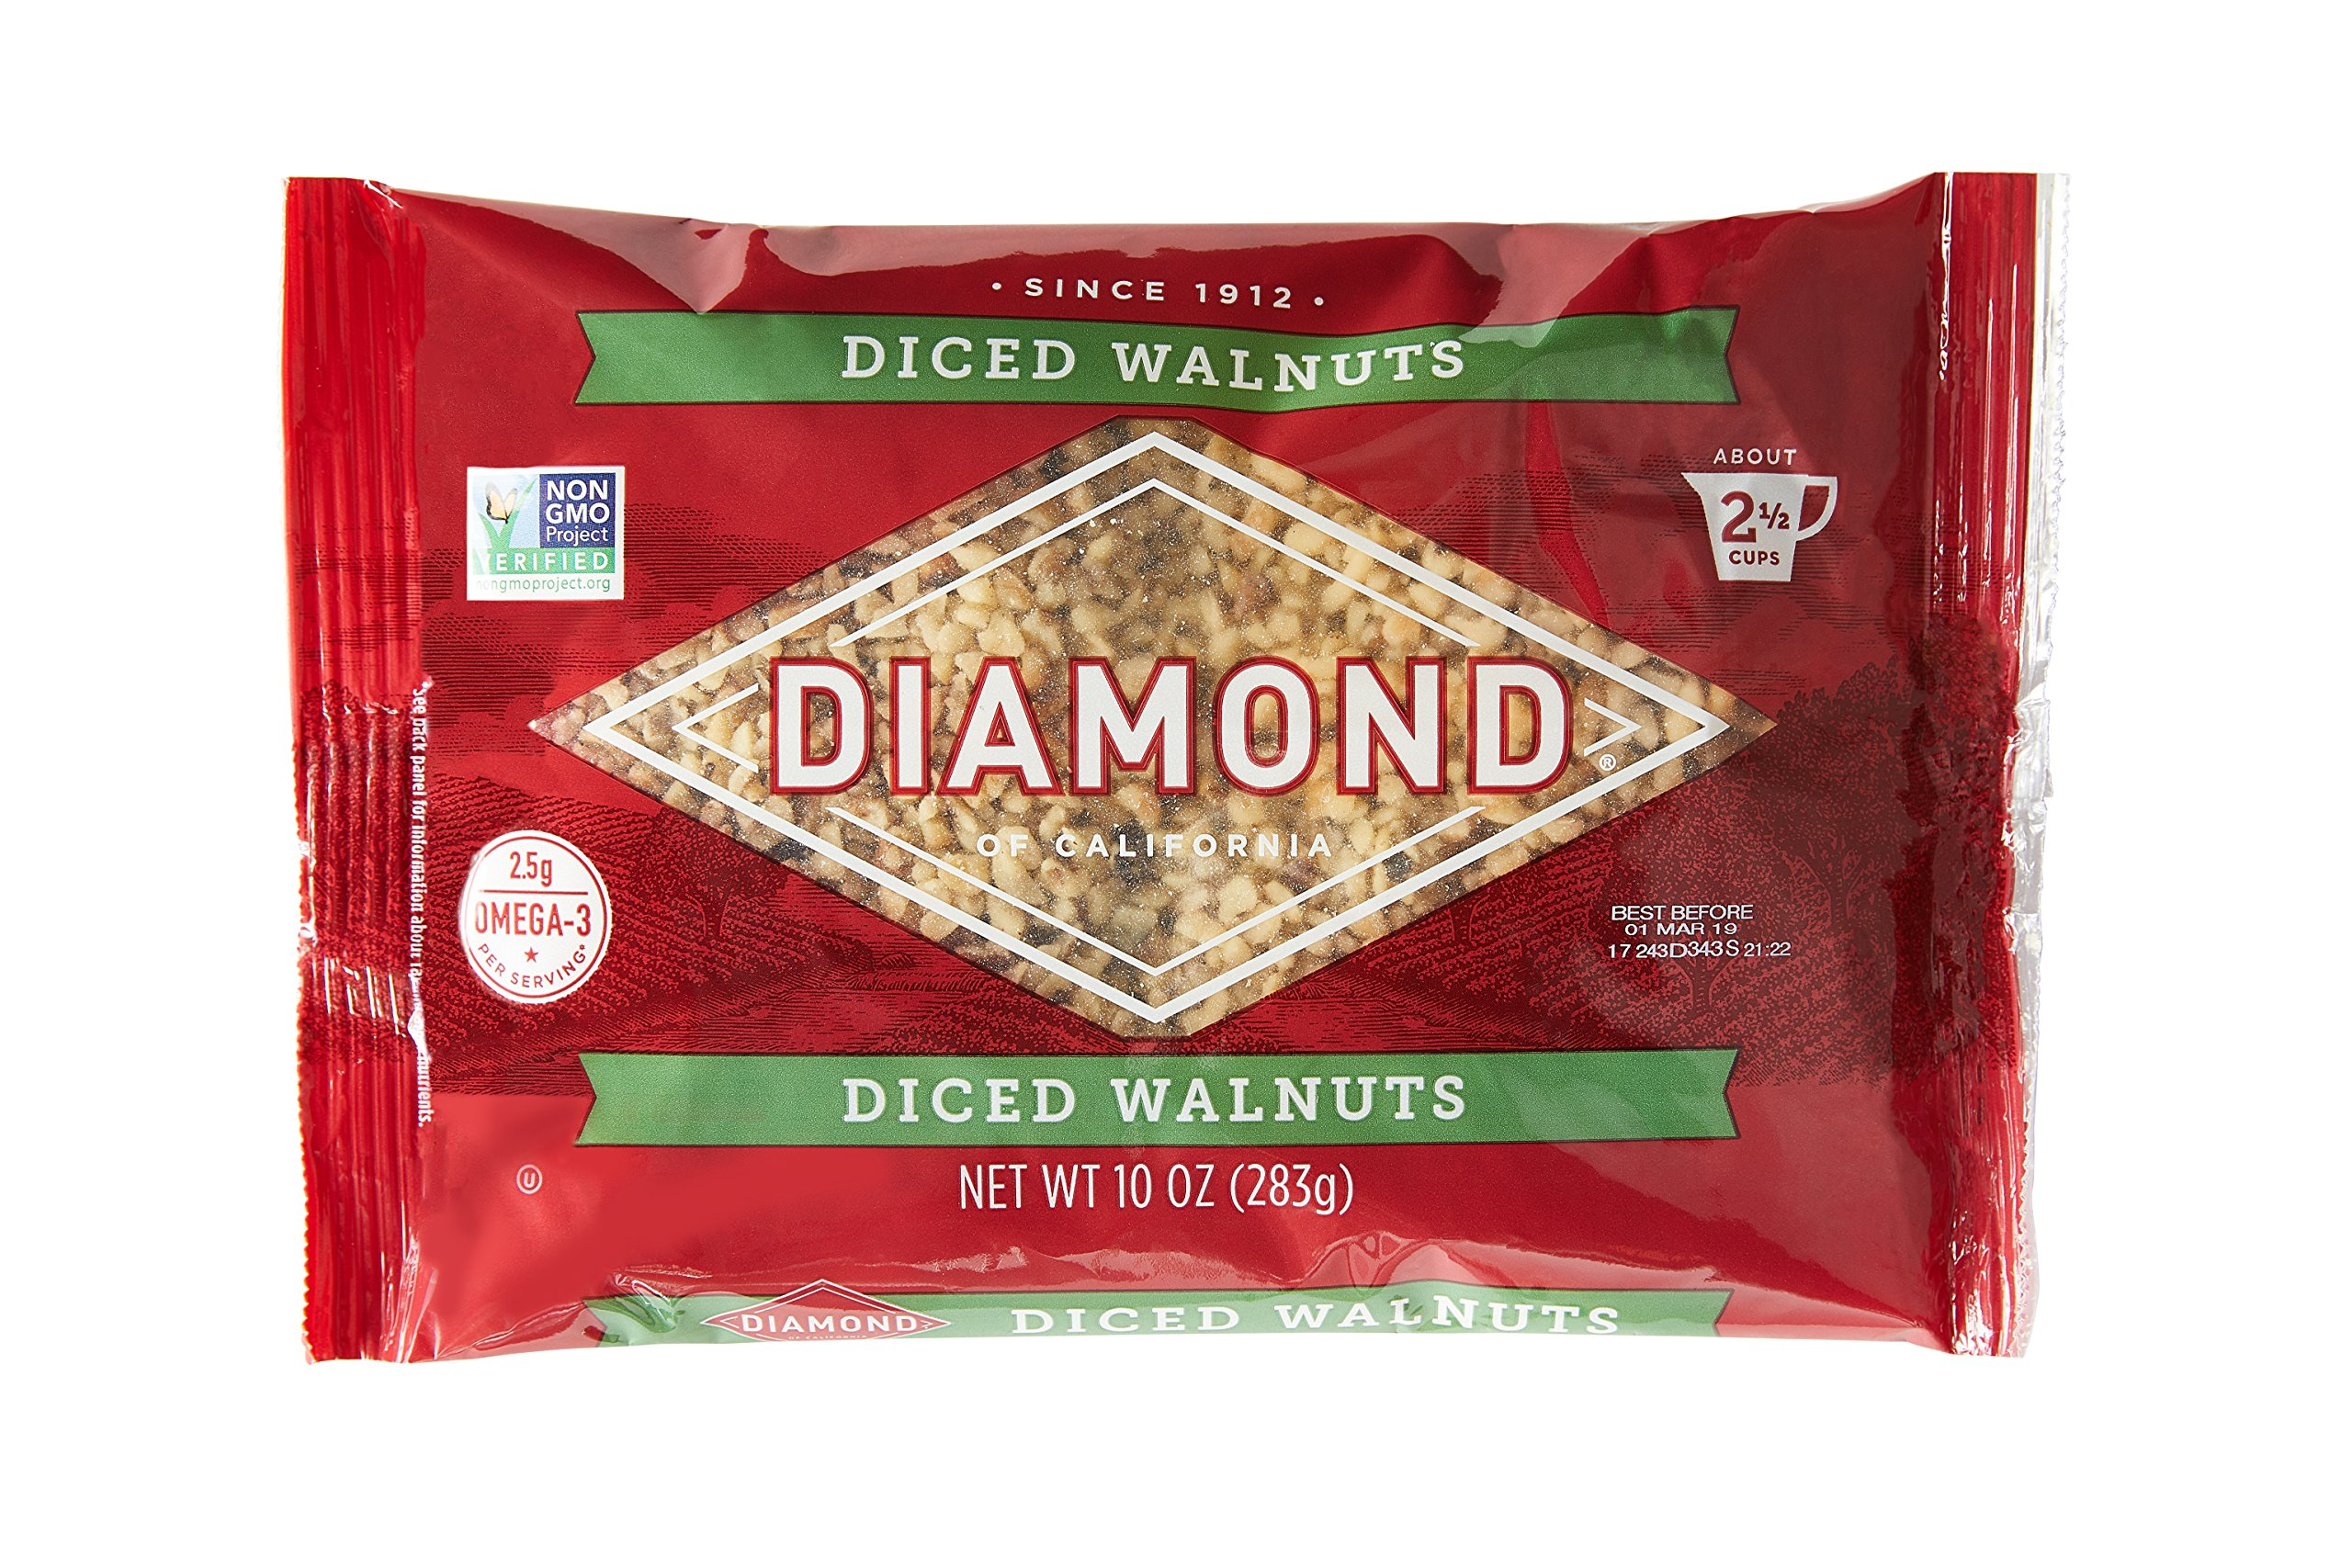 Diamond of California, Finely Diced Walnuts, Non GMO, No Added Salt, 10 Ounce, Pack of 6 by Diamond of California